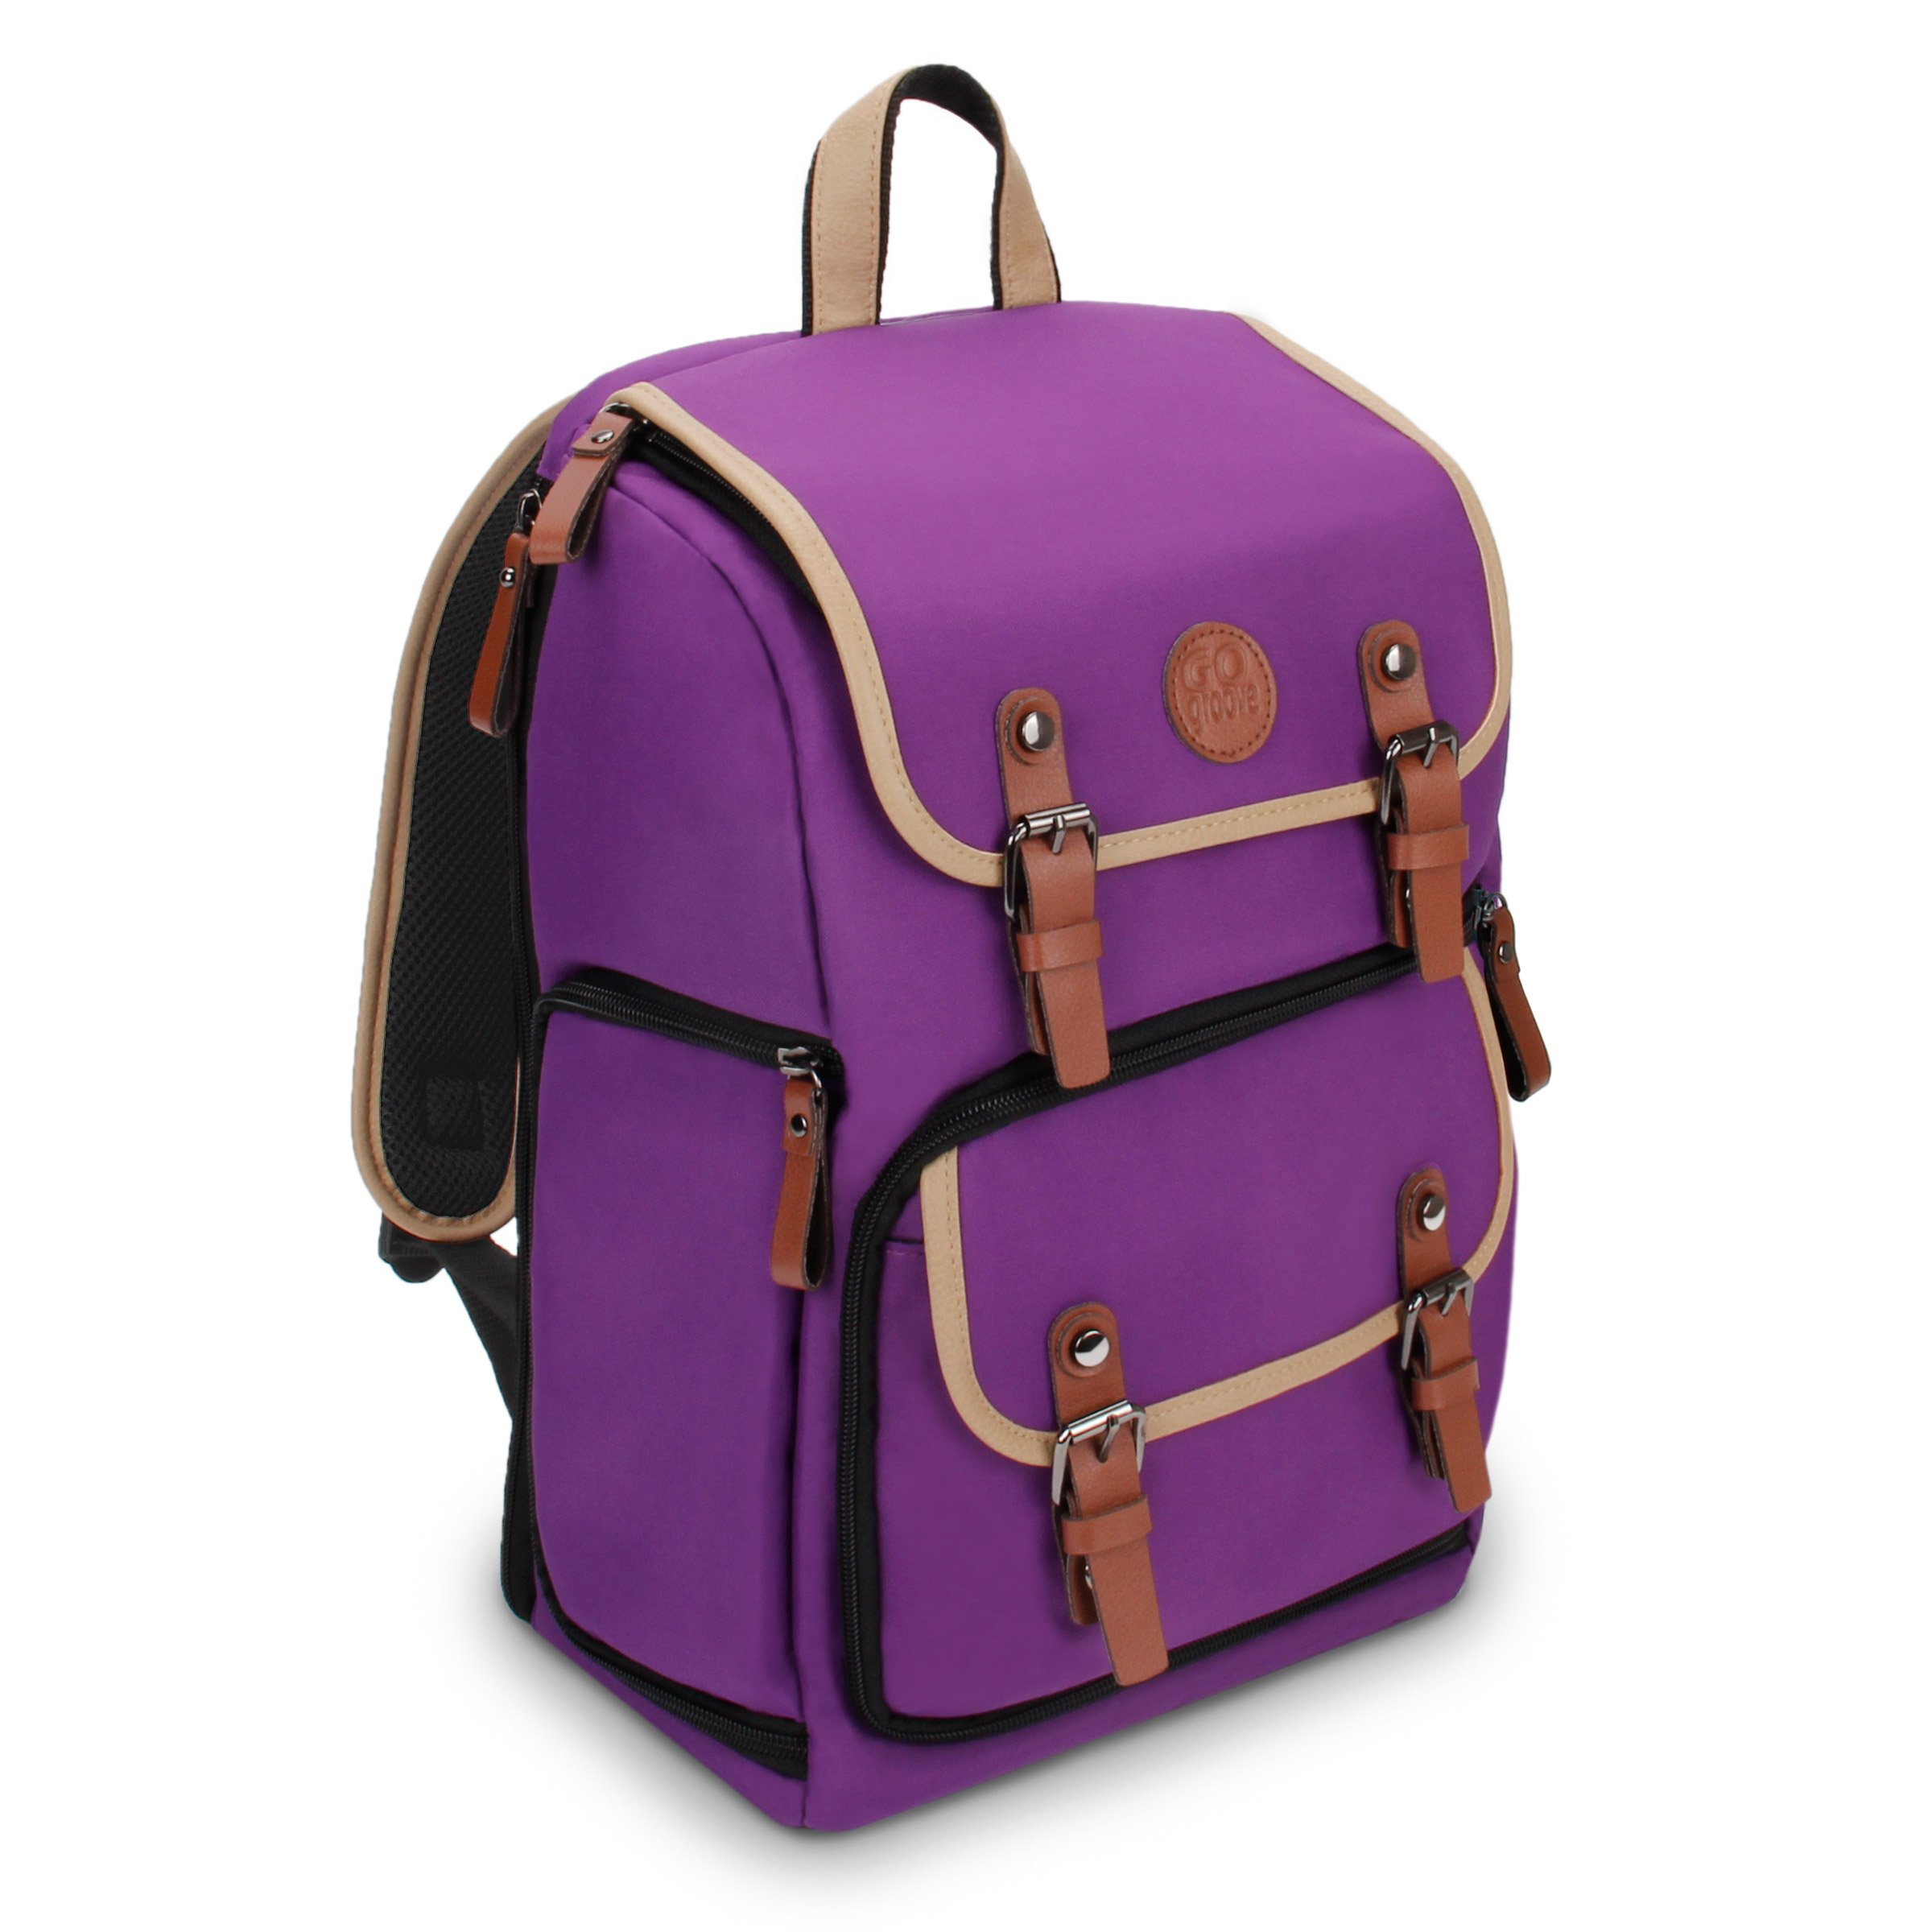 GOgroove Digital SLR Camera Backpack (Mid-Volume Purple) w/Tablet Compartment, Customizable Dividers for Accessory Storage, Tripod Holder and Weatherproof Rain Cover for Canon, Nikon, Olympus & More